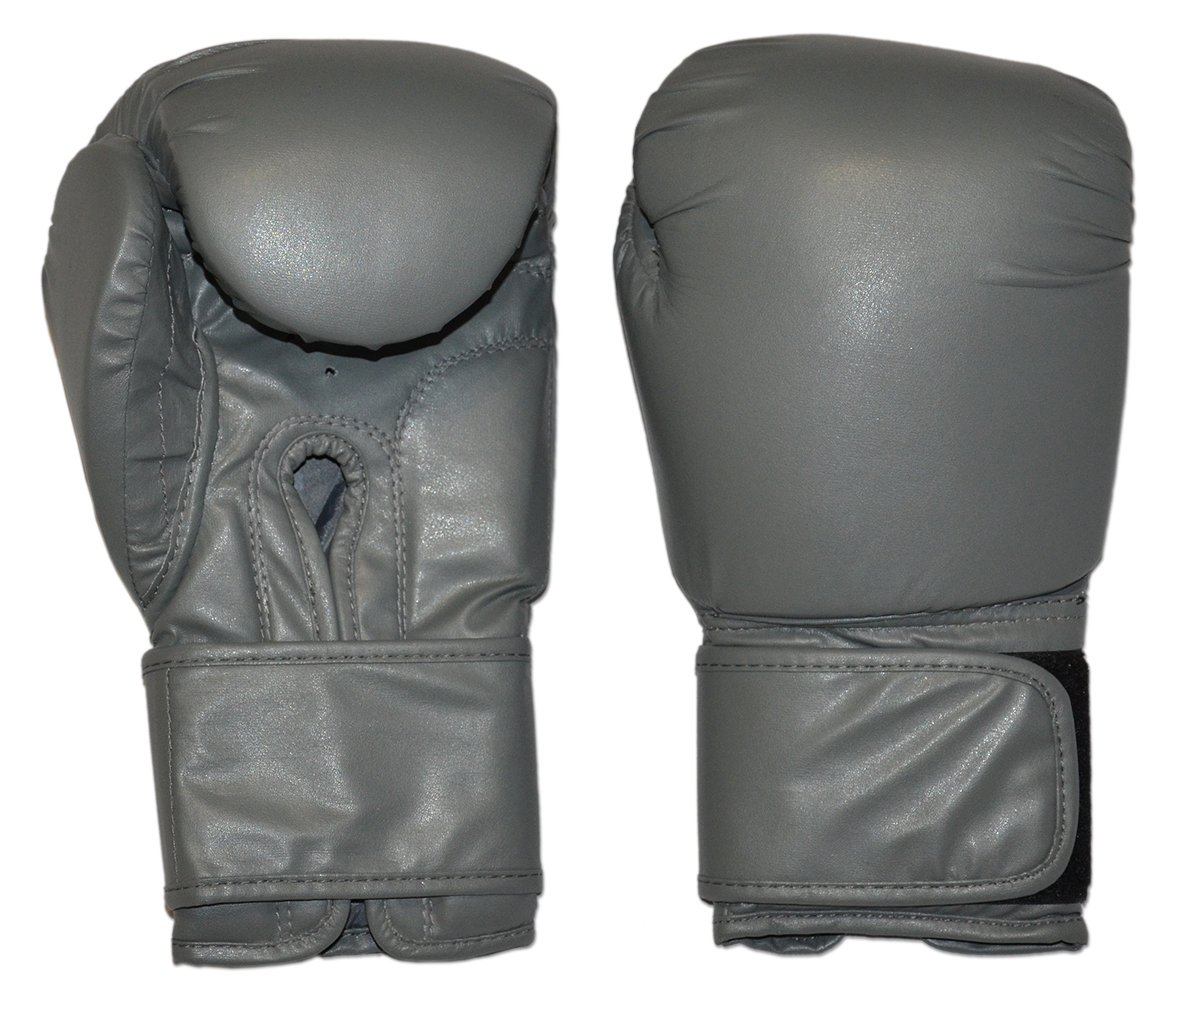 R2C NO LOGO Super Bag Gloves for Muay Thai, MMA, Kickboxing, Boxing, Krav Maga, Cardio Aerobic. Regular 10oz RING TO CAGE